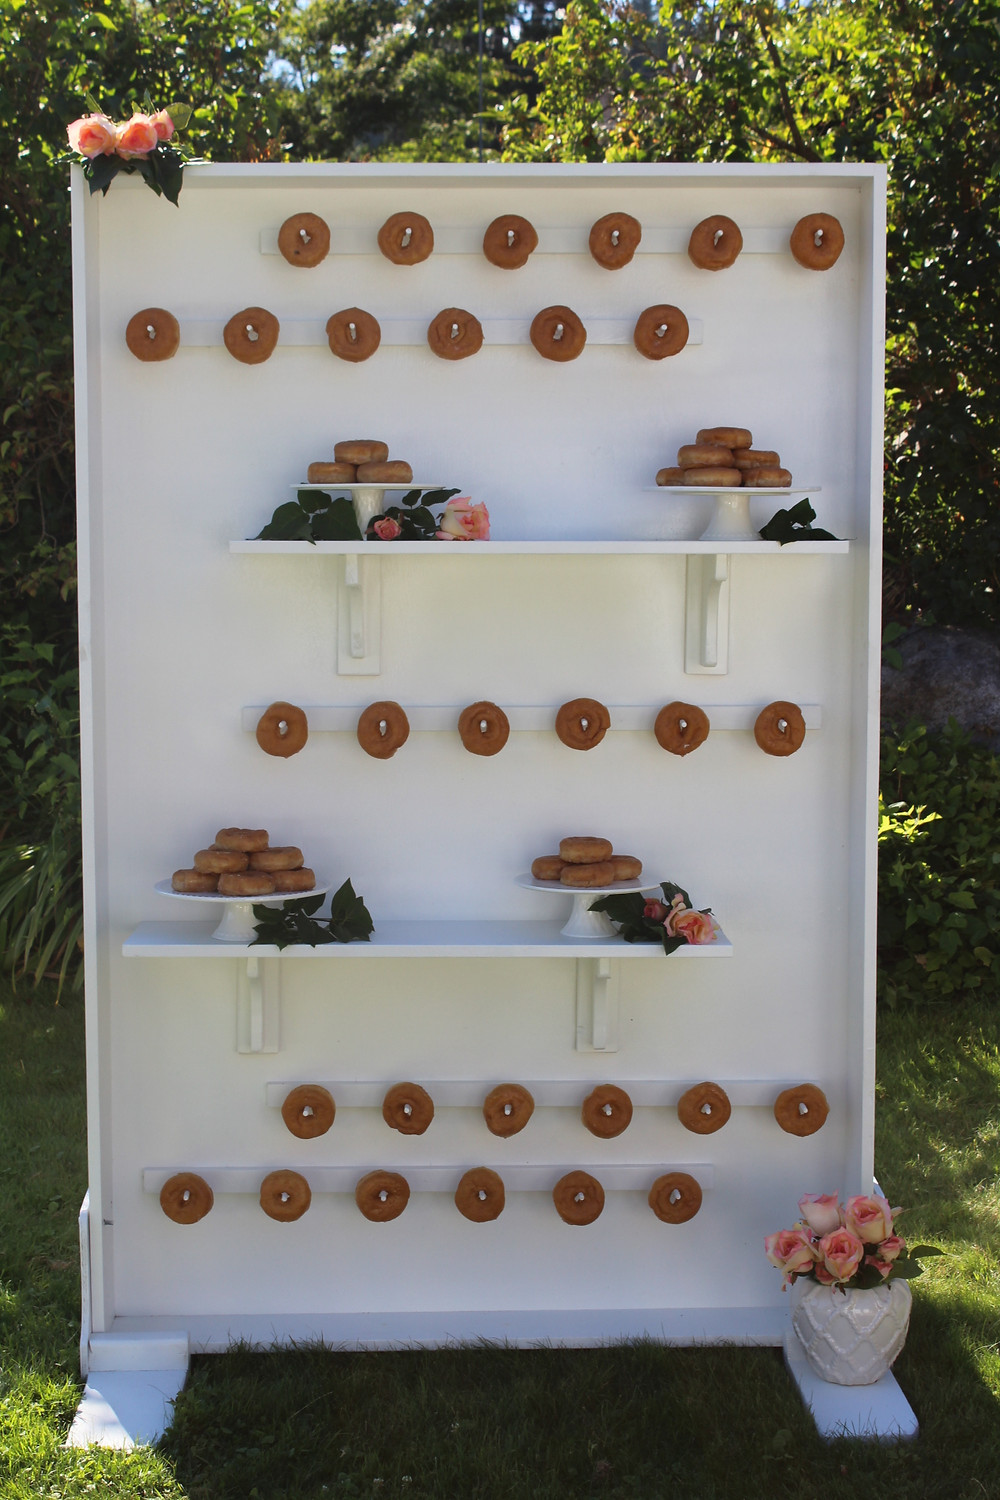 Donut Wall Rental - Over the Moon Wedding & Event Rentals